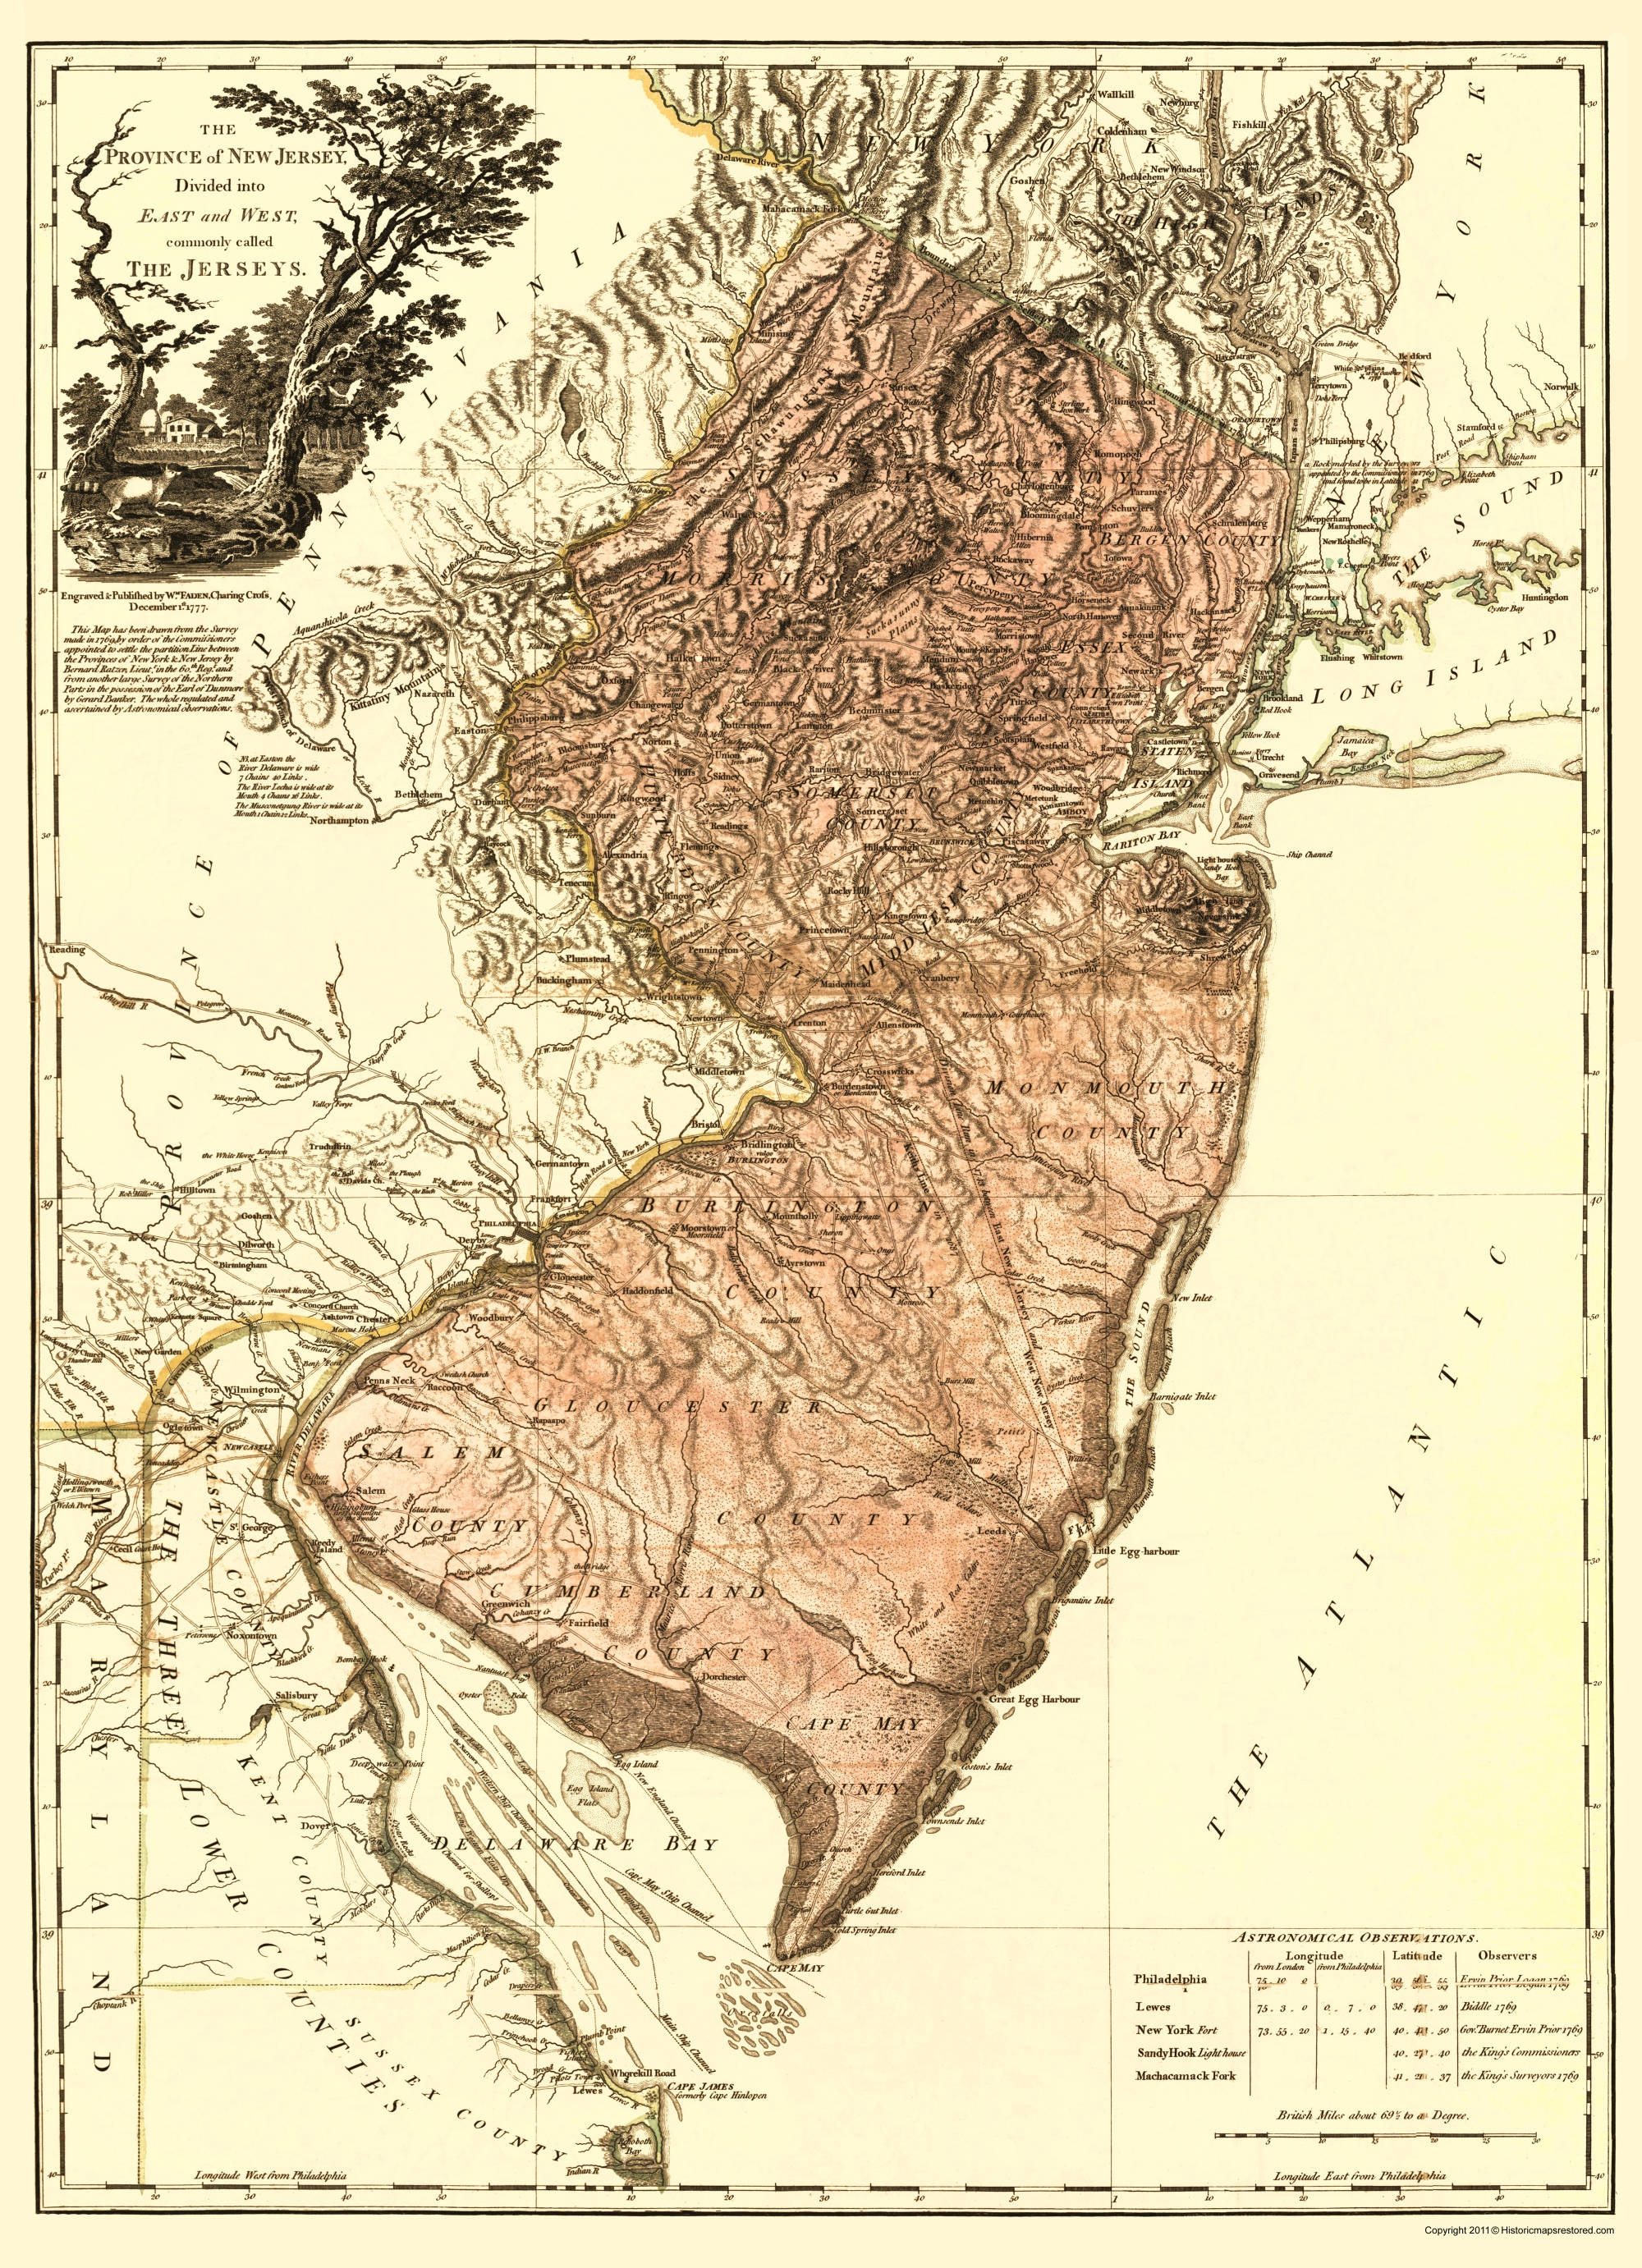 Revolutionary War Map Of New York.Old War Map New Jersey Divided Into East And West 1777